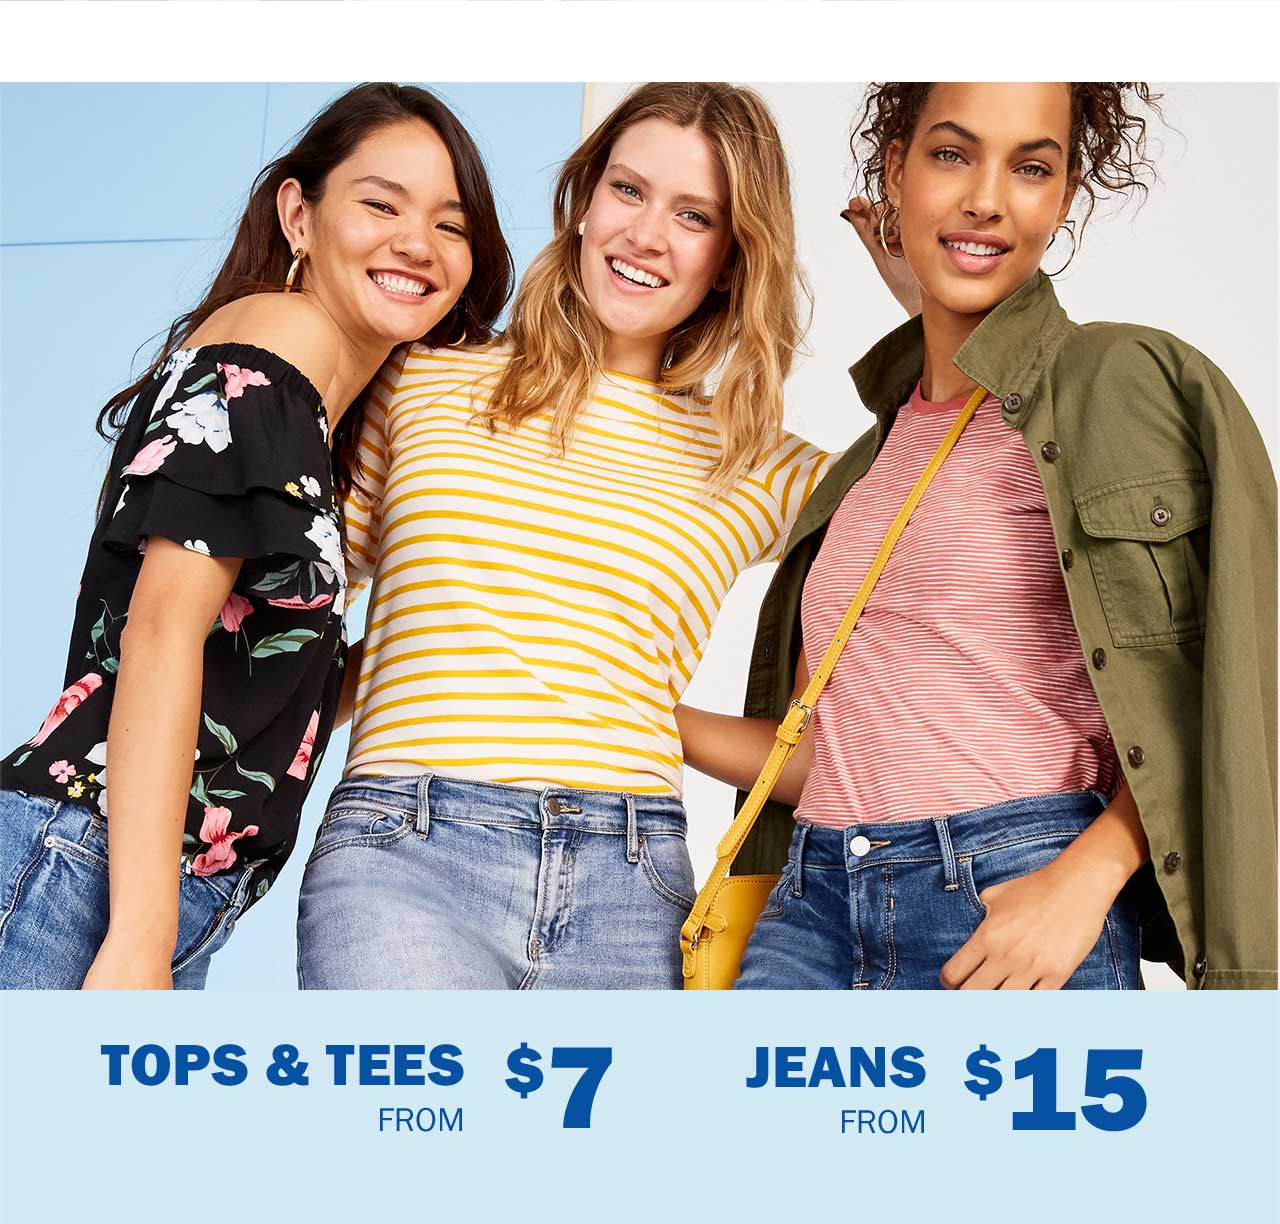 TOPS & TEES FROM $7 | JEANS FROM $15